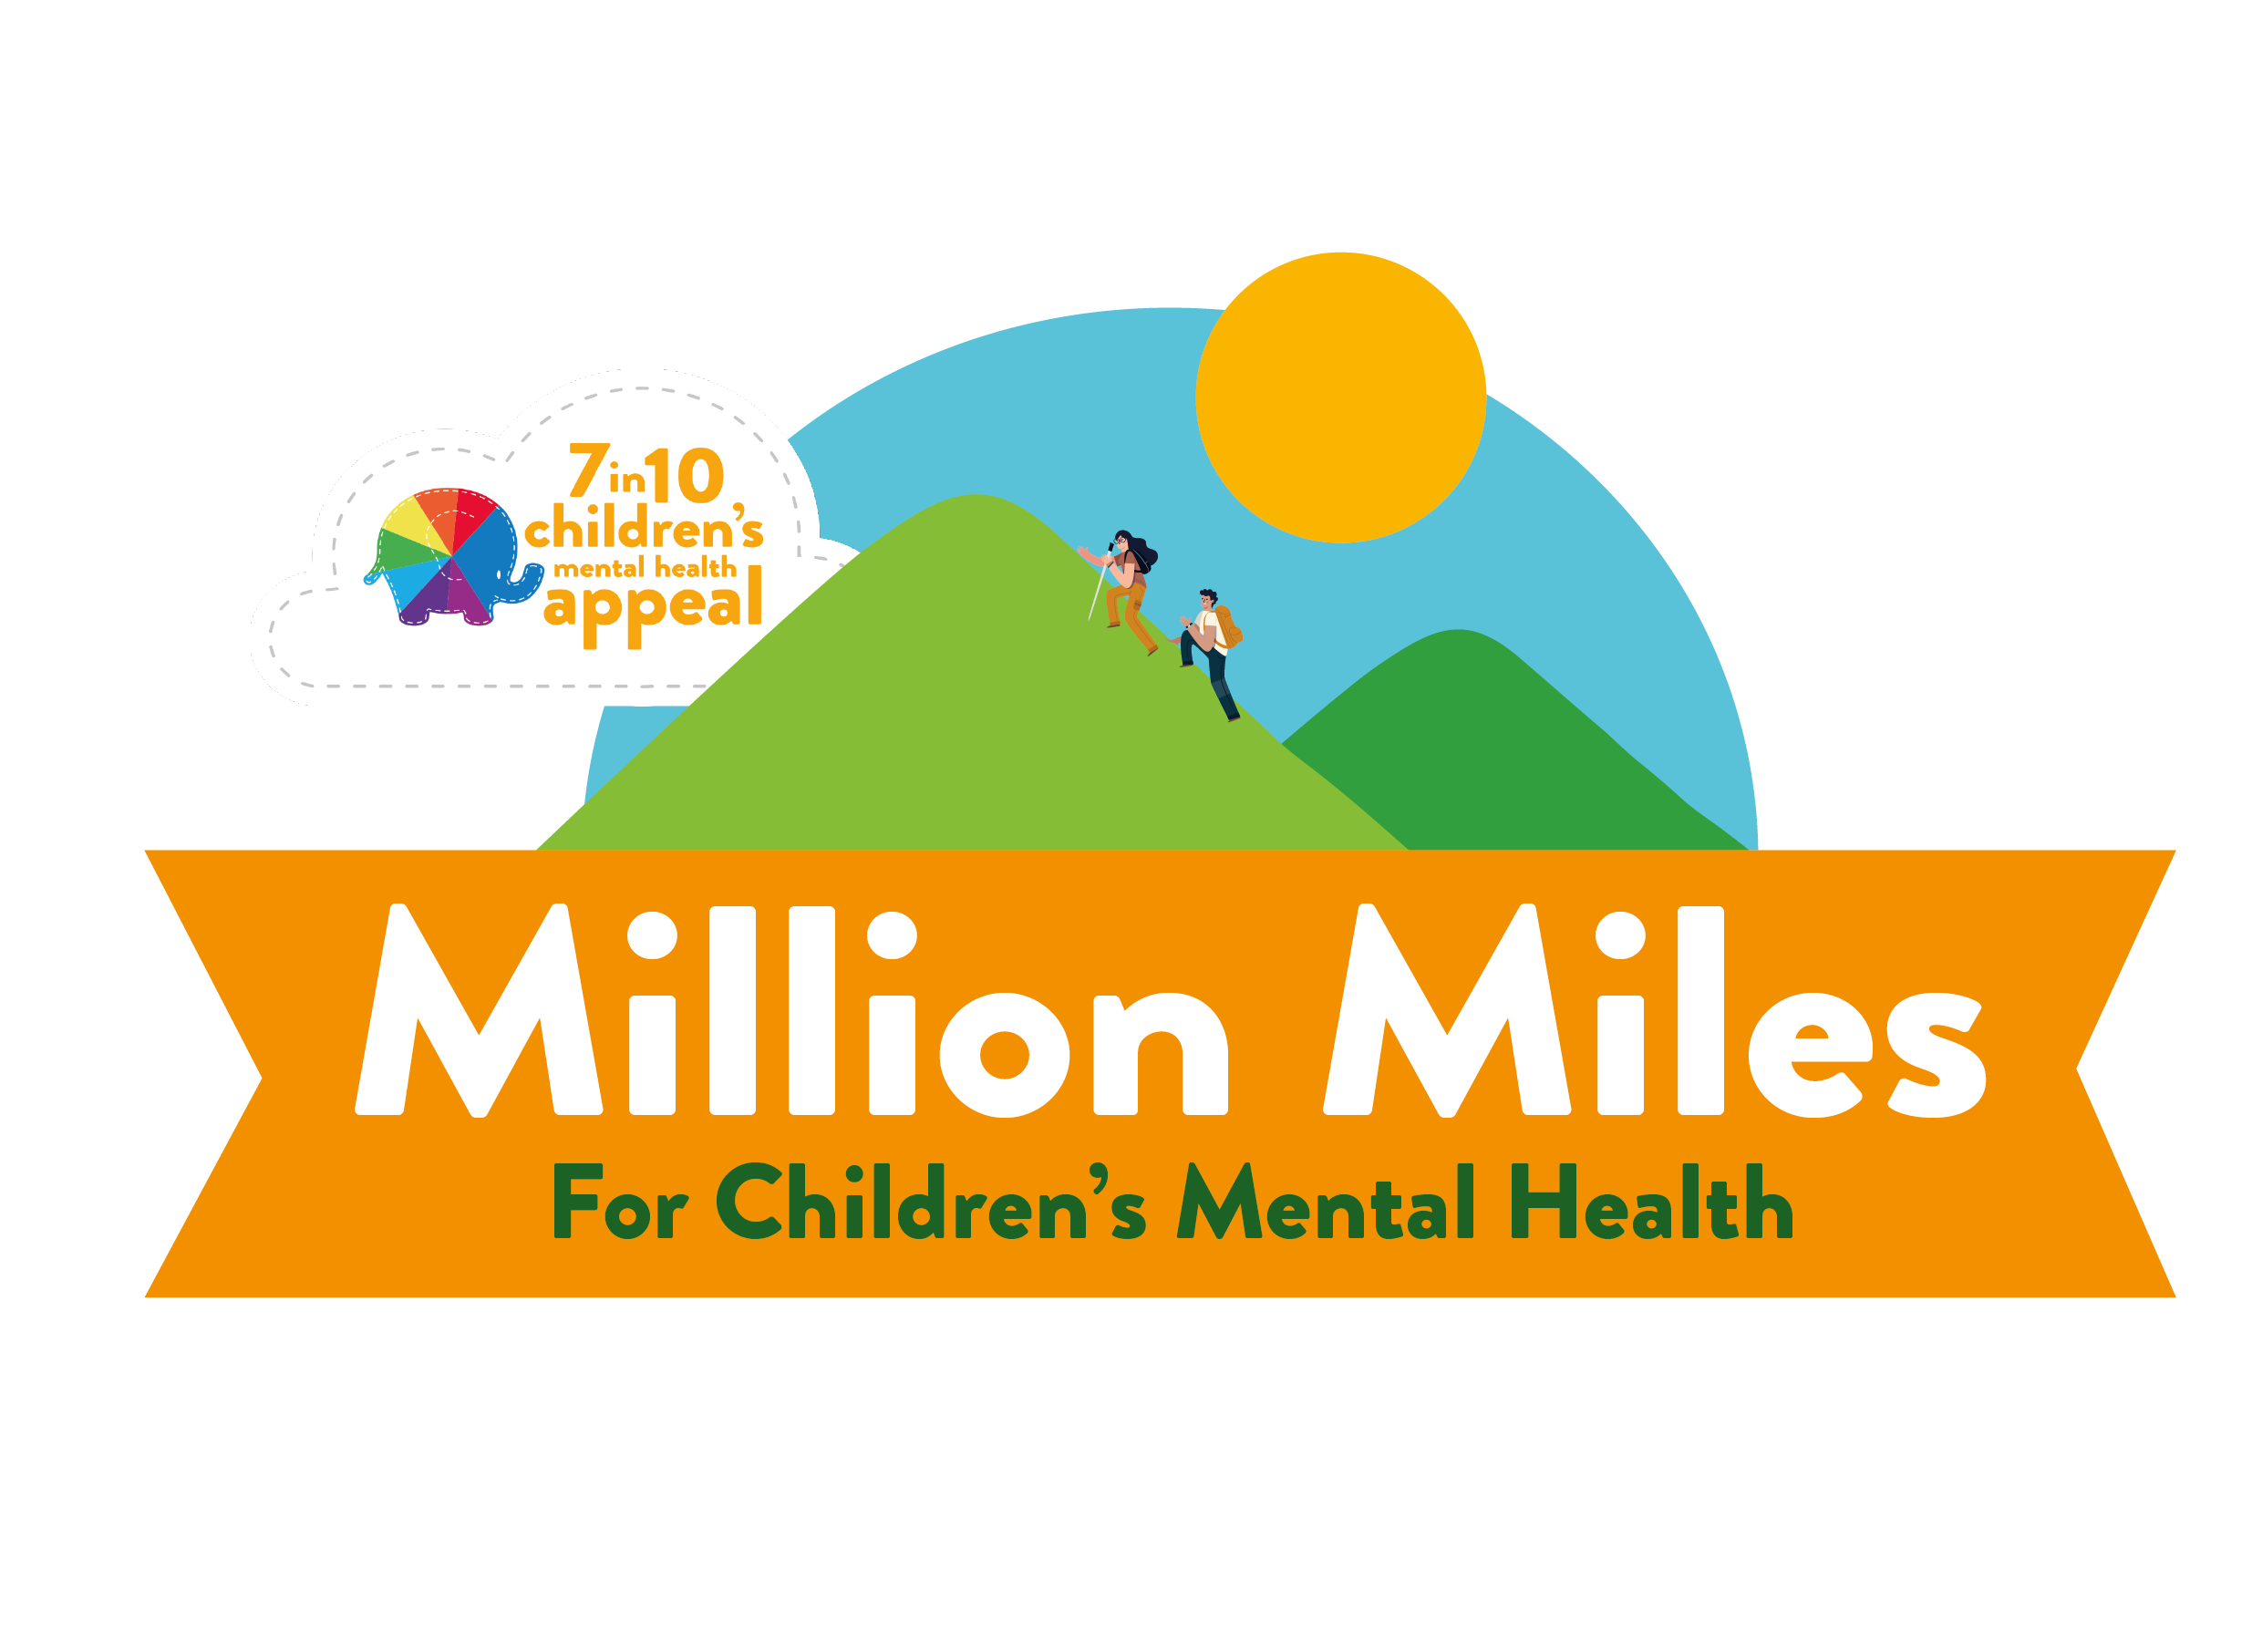 Million Miles for Mental Health